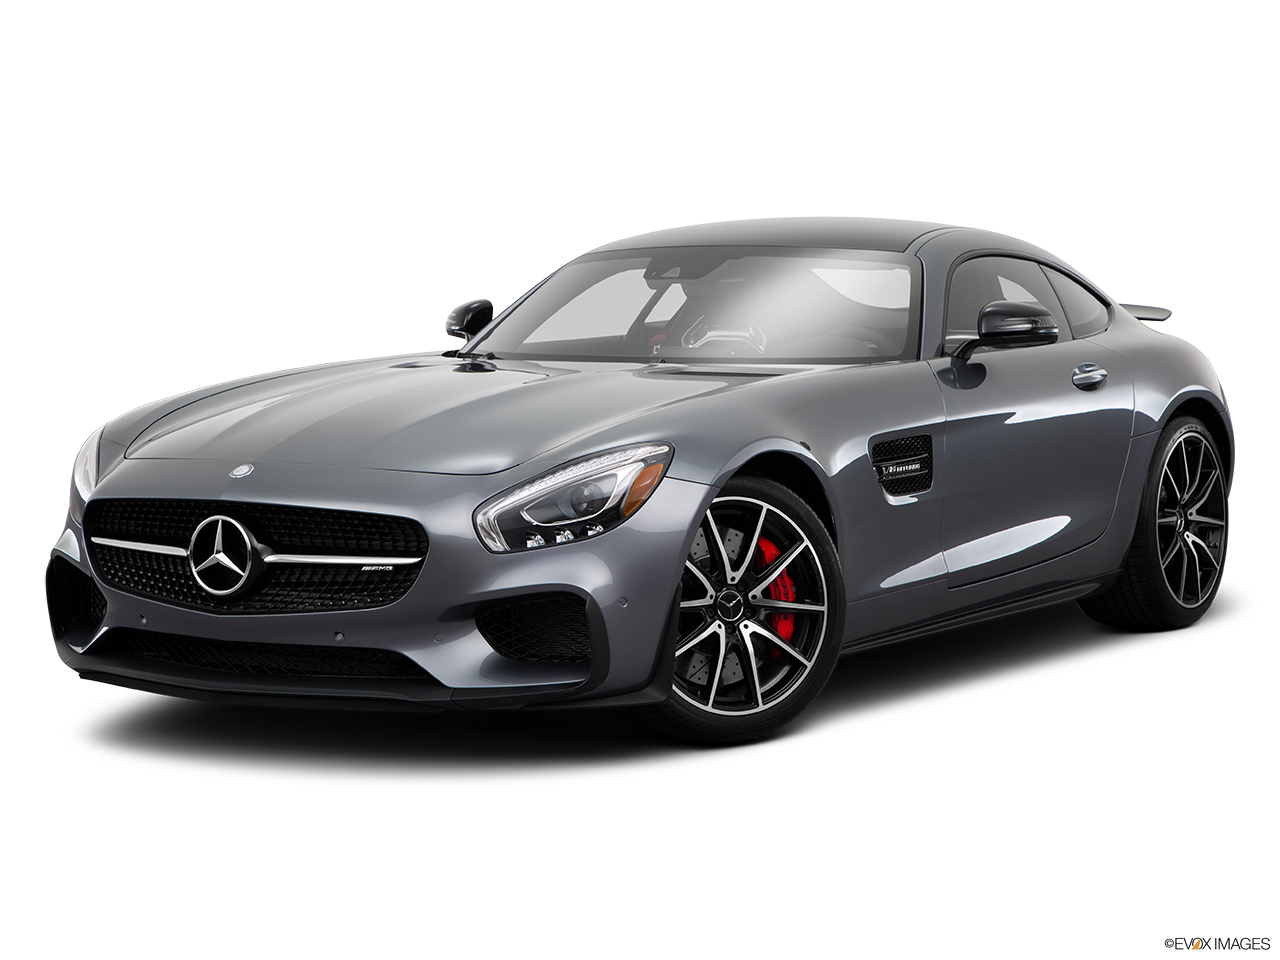 Car pictures list for mercedes benz amg gt 2016 s uae for Mercedes benz vehicles list